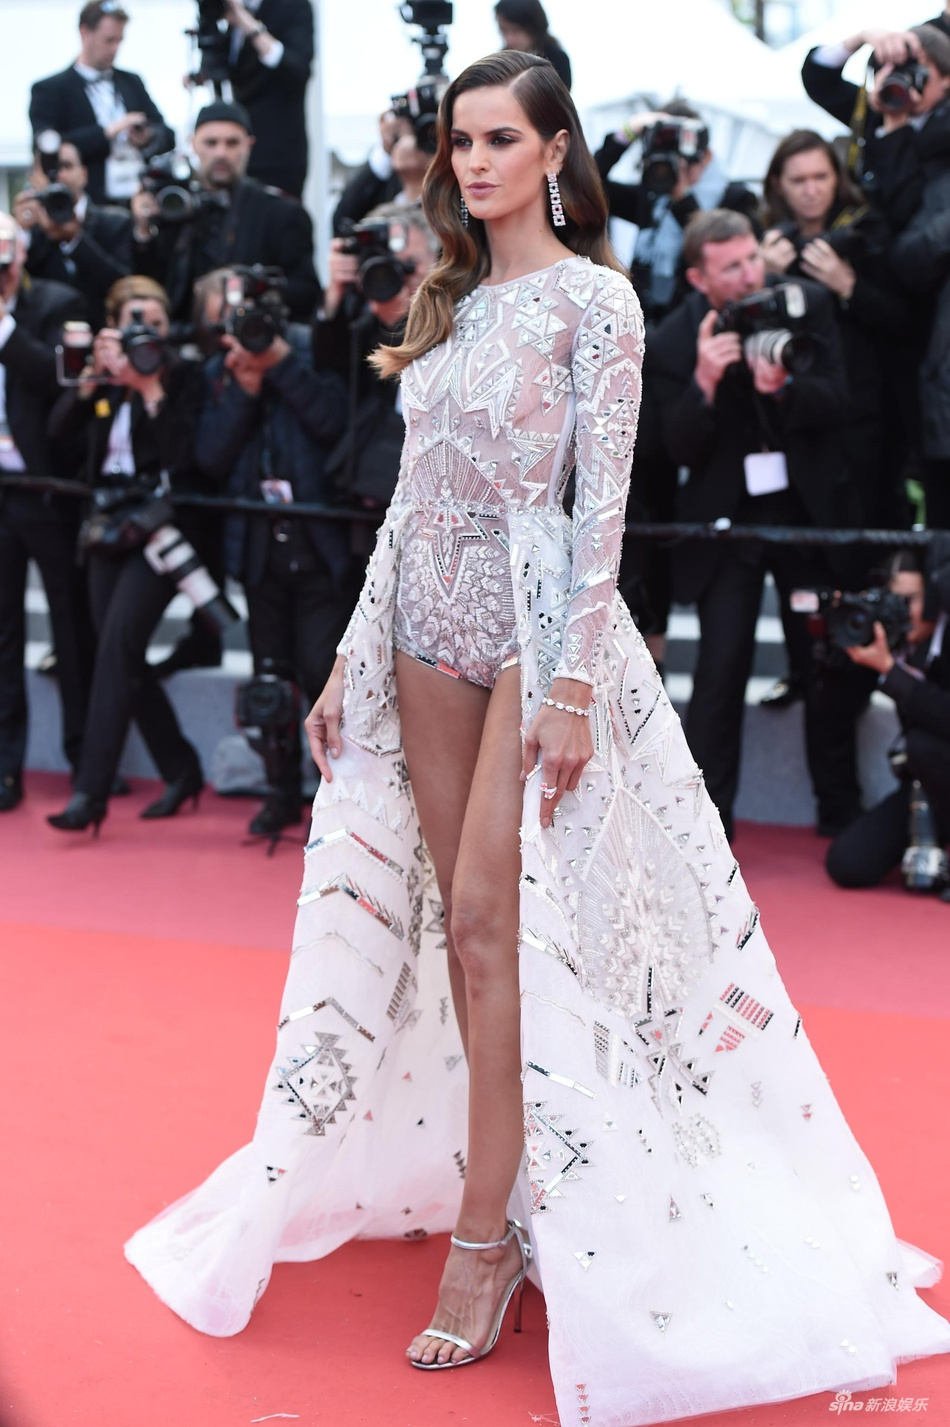 Tham do Cannes anh 10